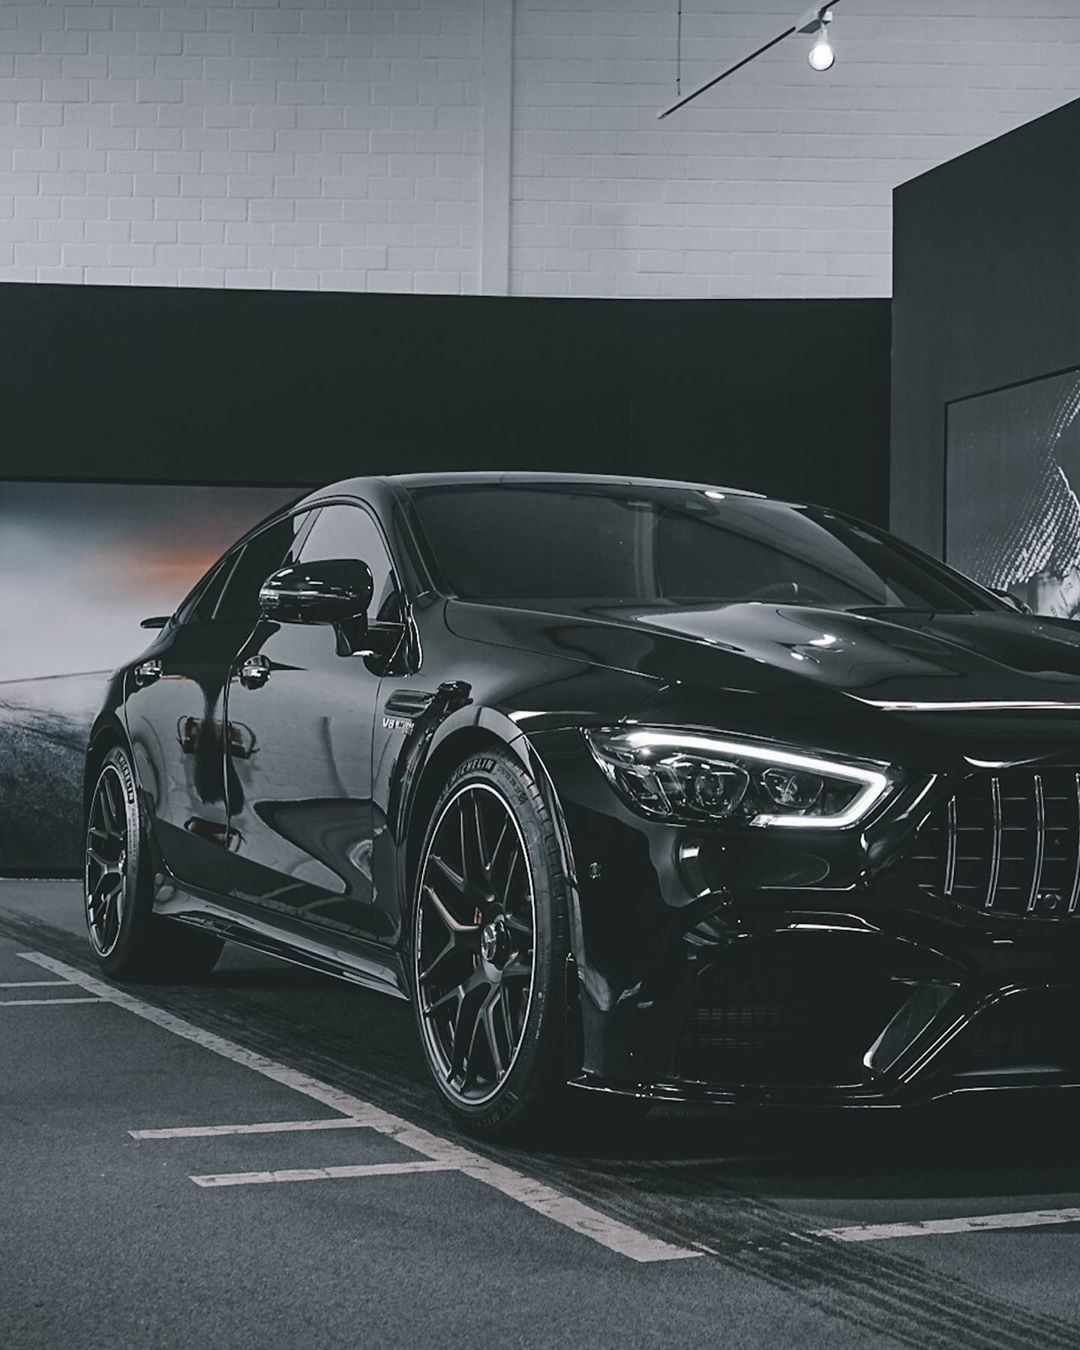 The Dark Knight Mercedes Amg Gt 63 S 4matic Coupe In 2021 Amg Car Mercedes Benz Amg Mercedes Wallpaper